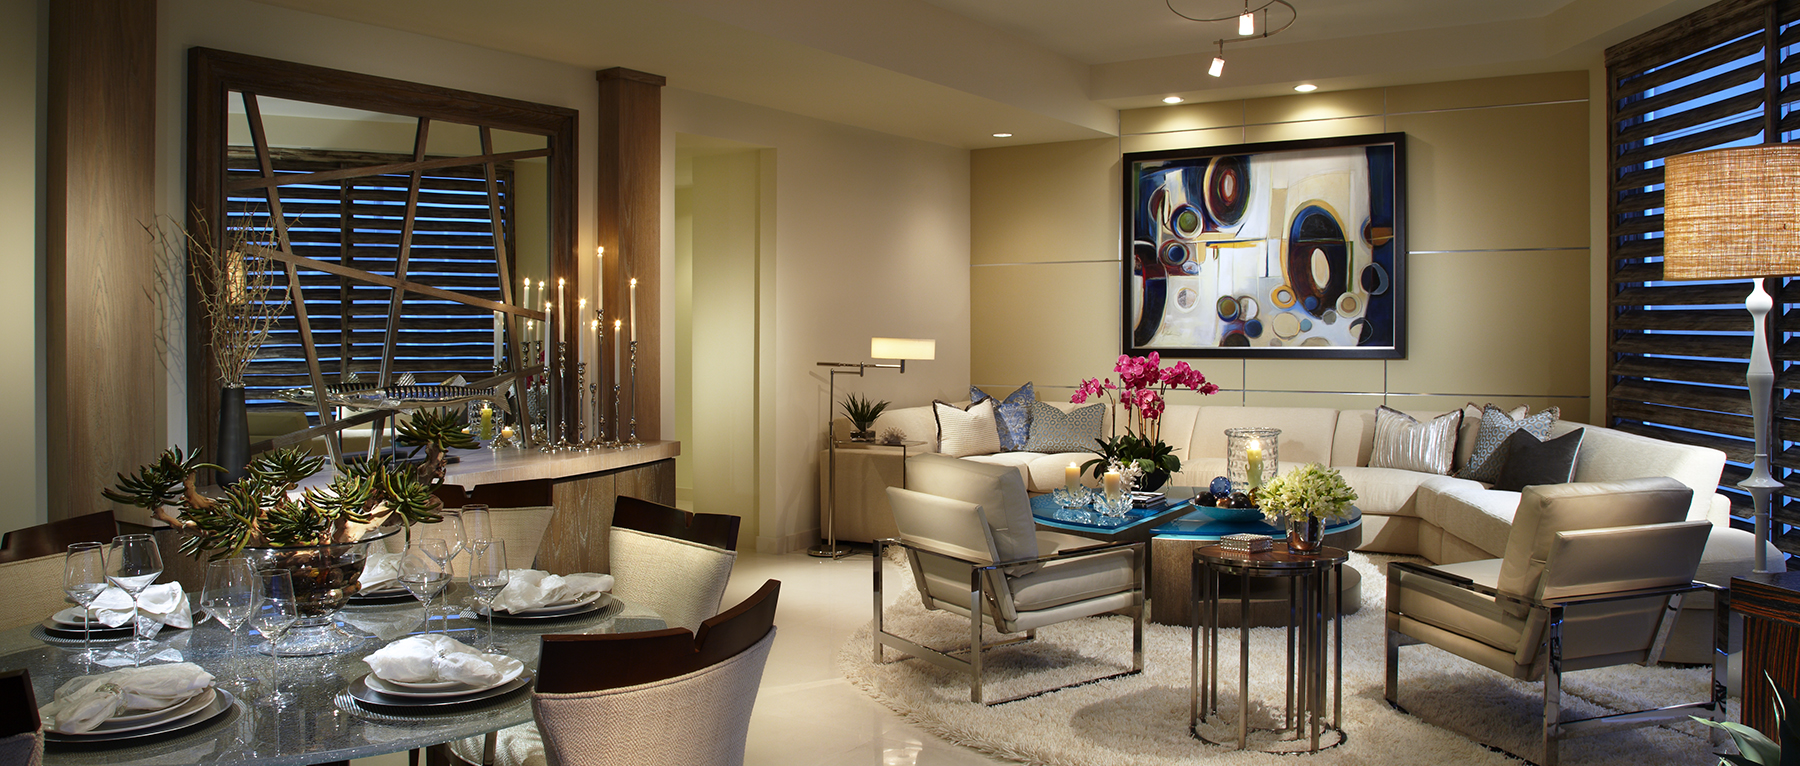 Exceptional South Florida Interior Designers